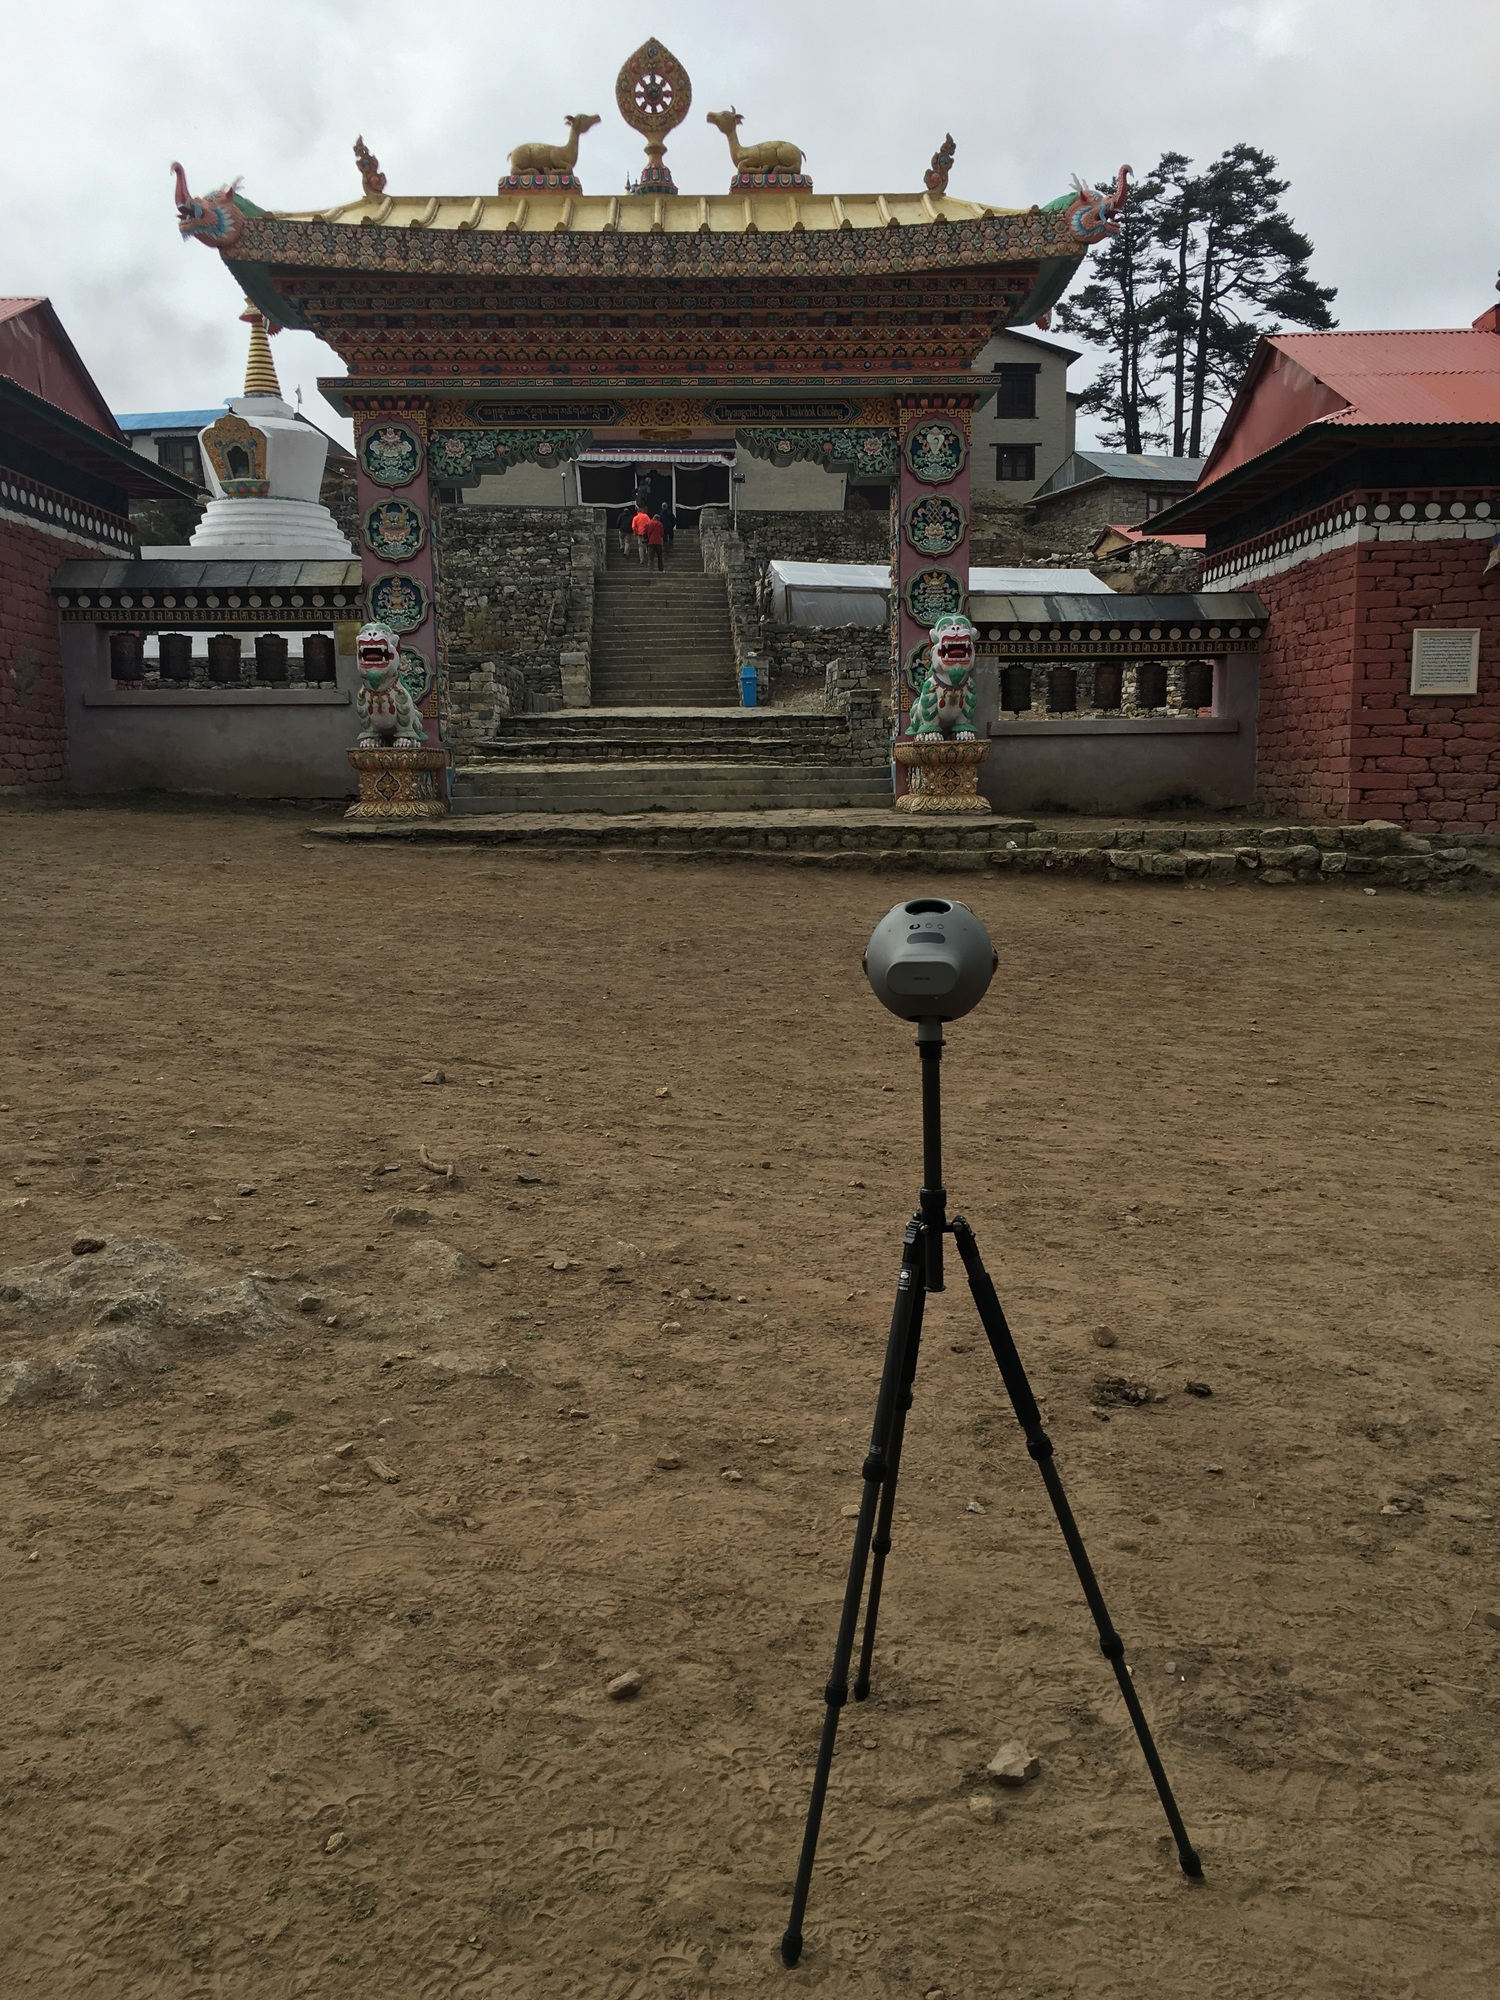 Capturing some 360s in front of the Tengboche Monestary.